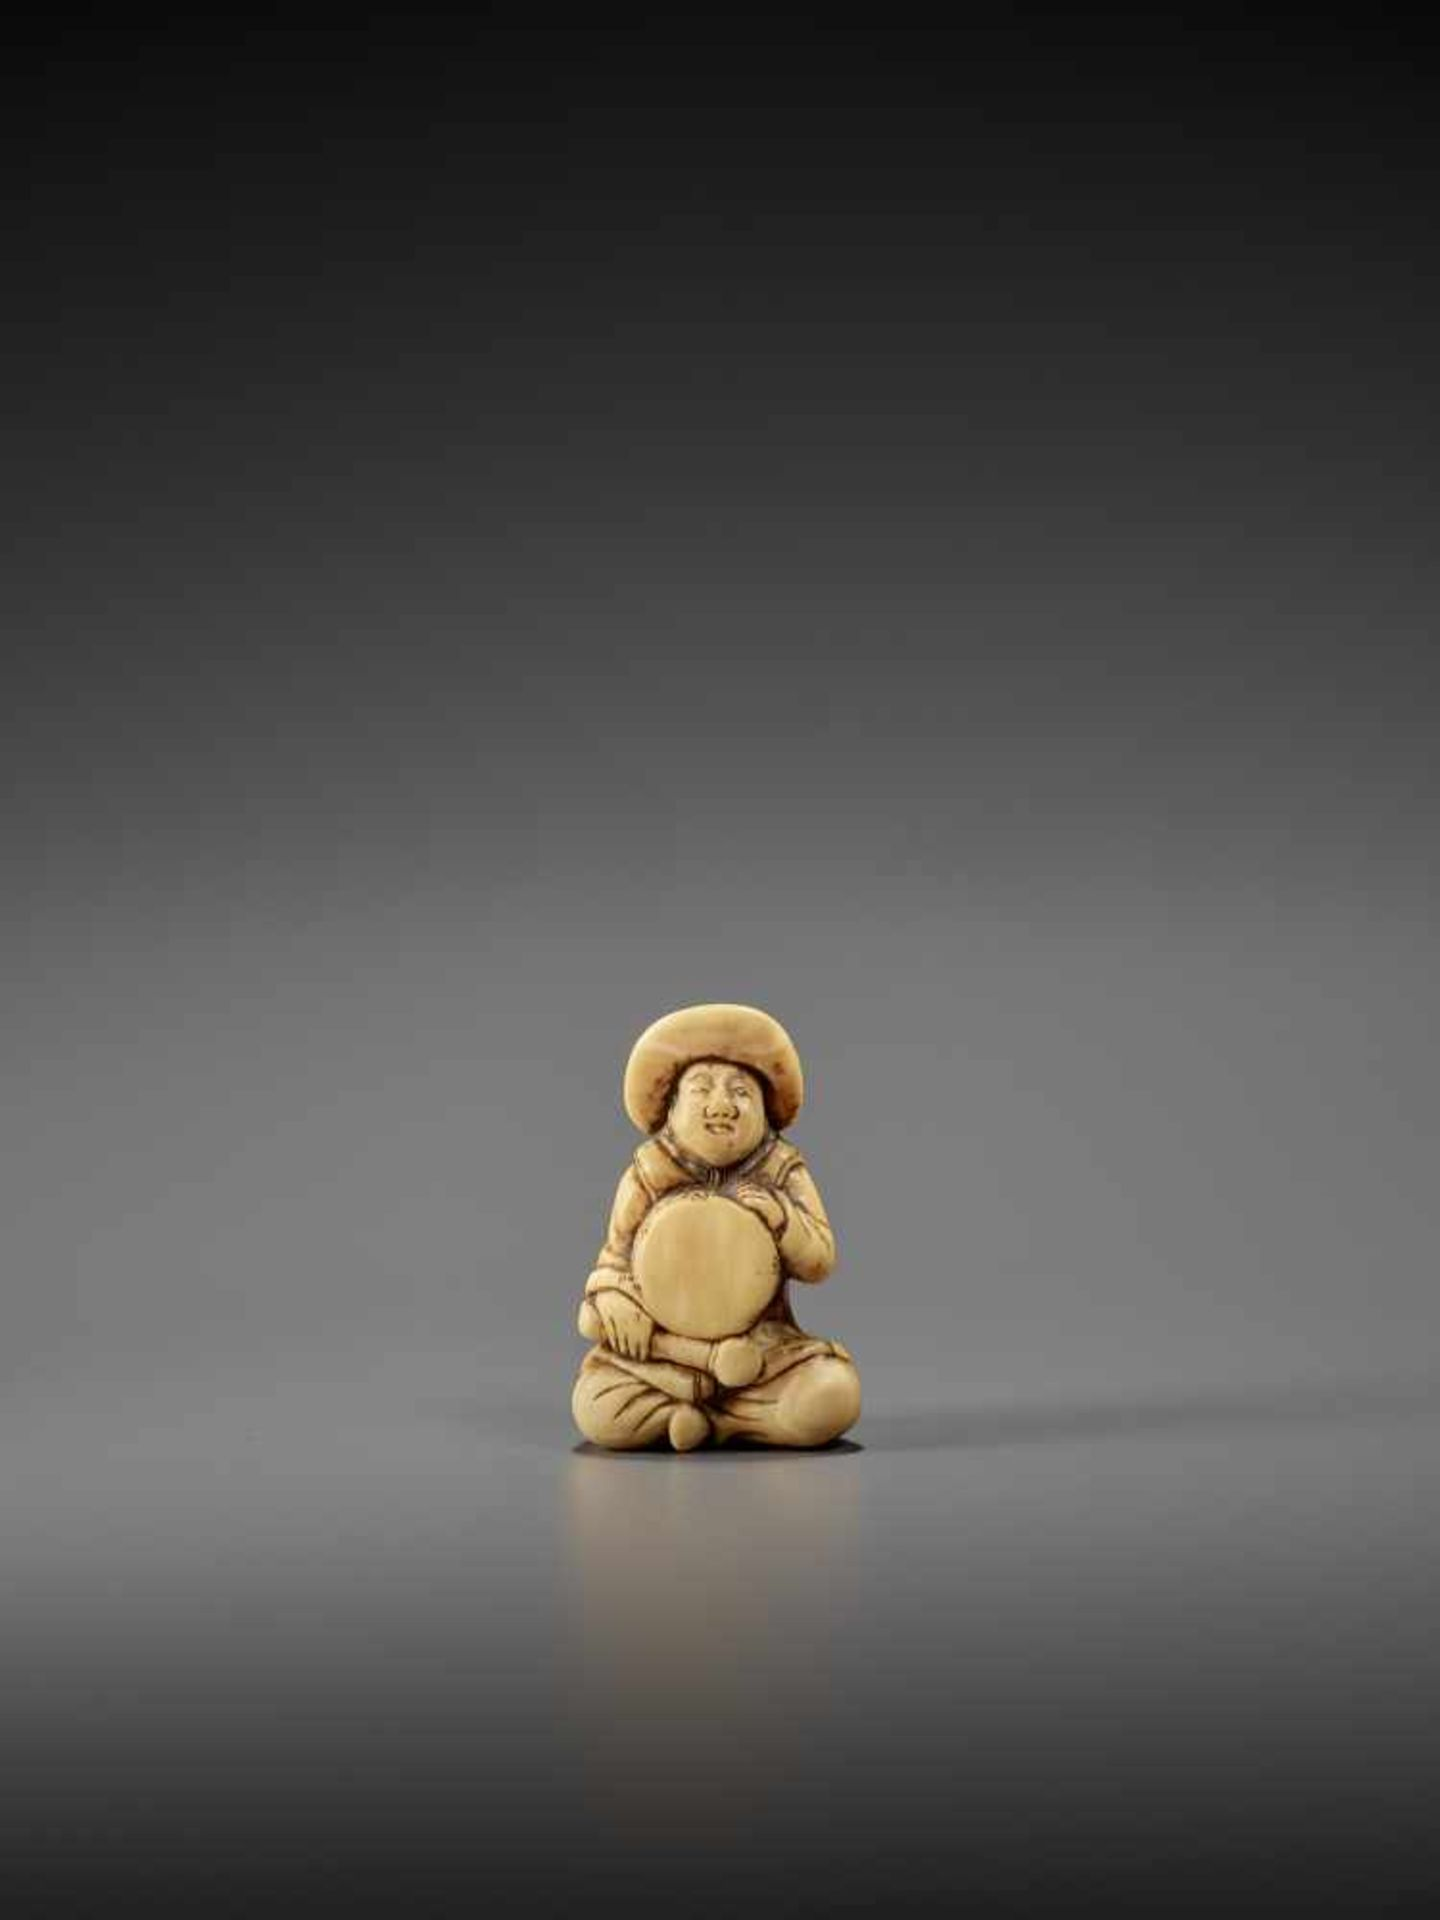 AN IVORY NETSUKE OF A DUTCHMAN WITH DRUM UnsignedJapan, late 18th century, Edo period (1615-1868)